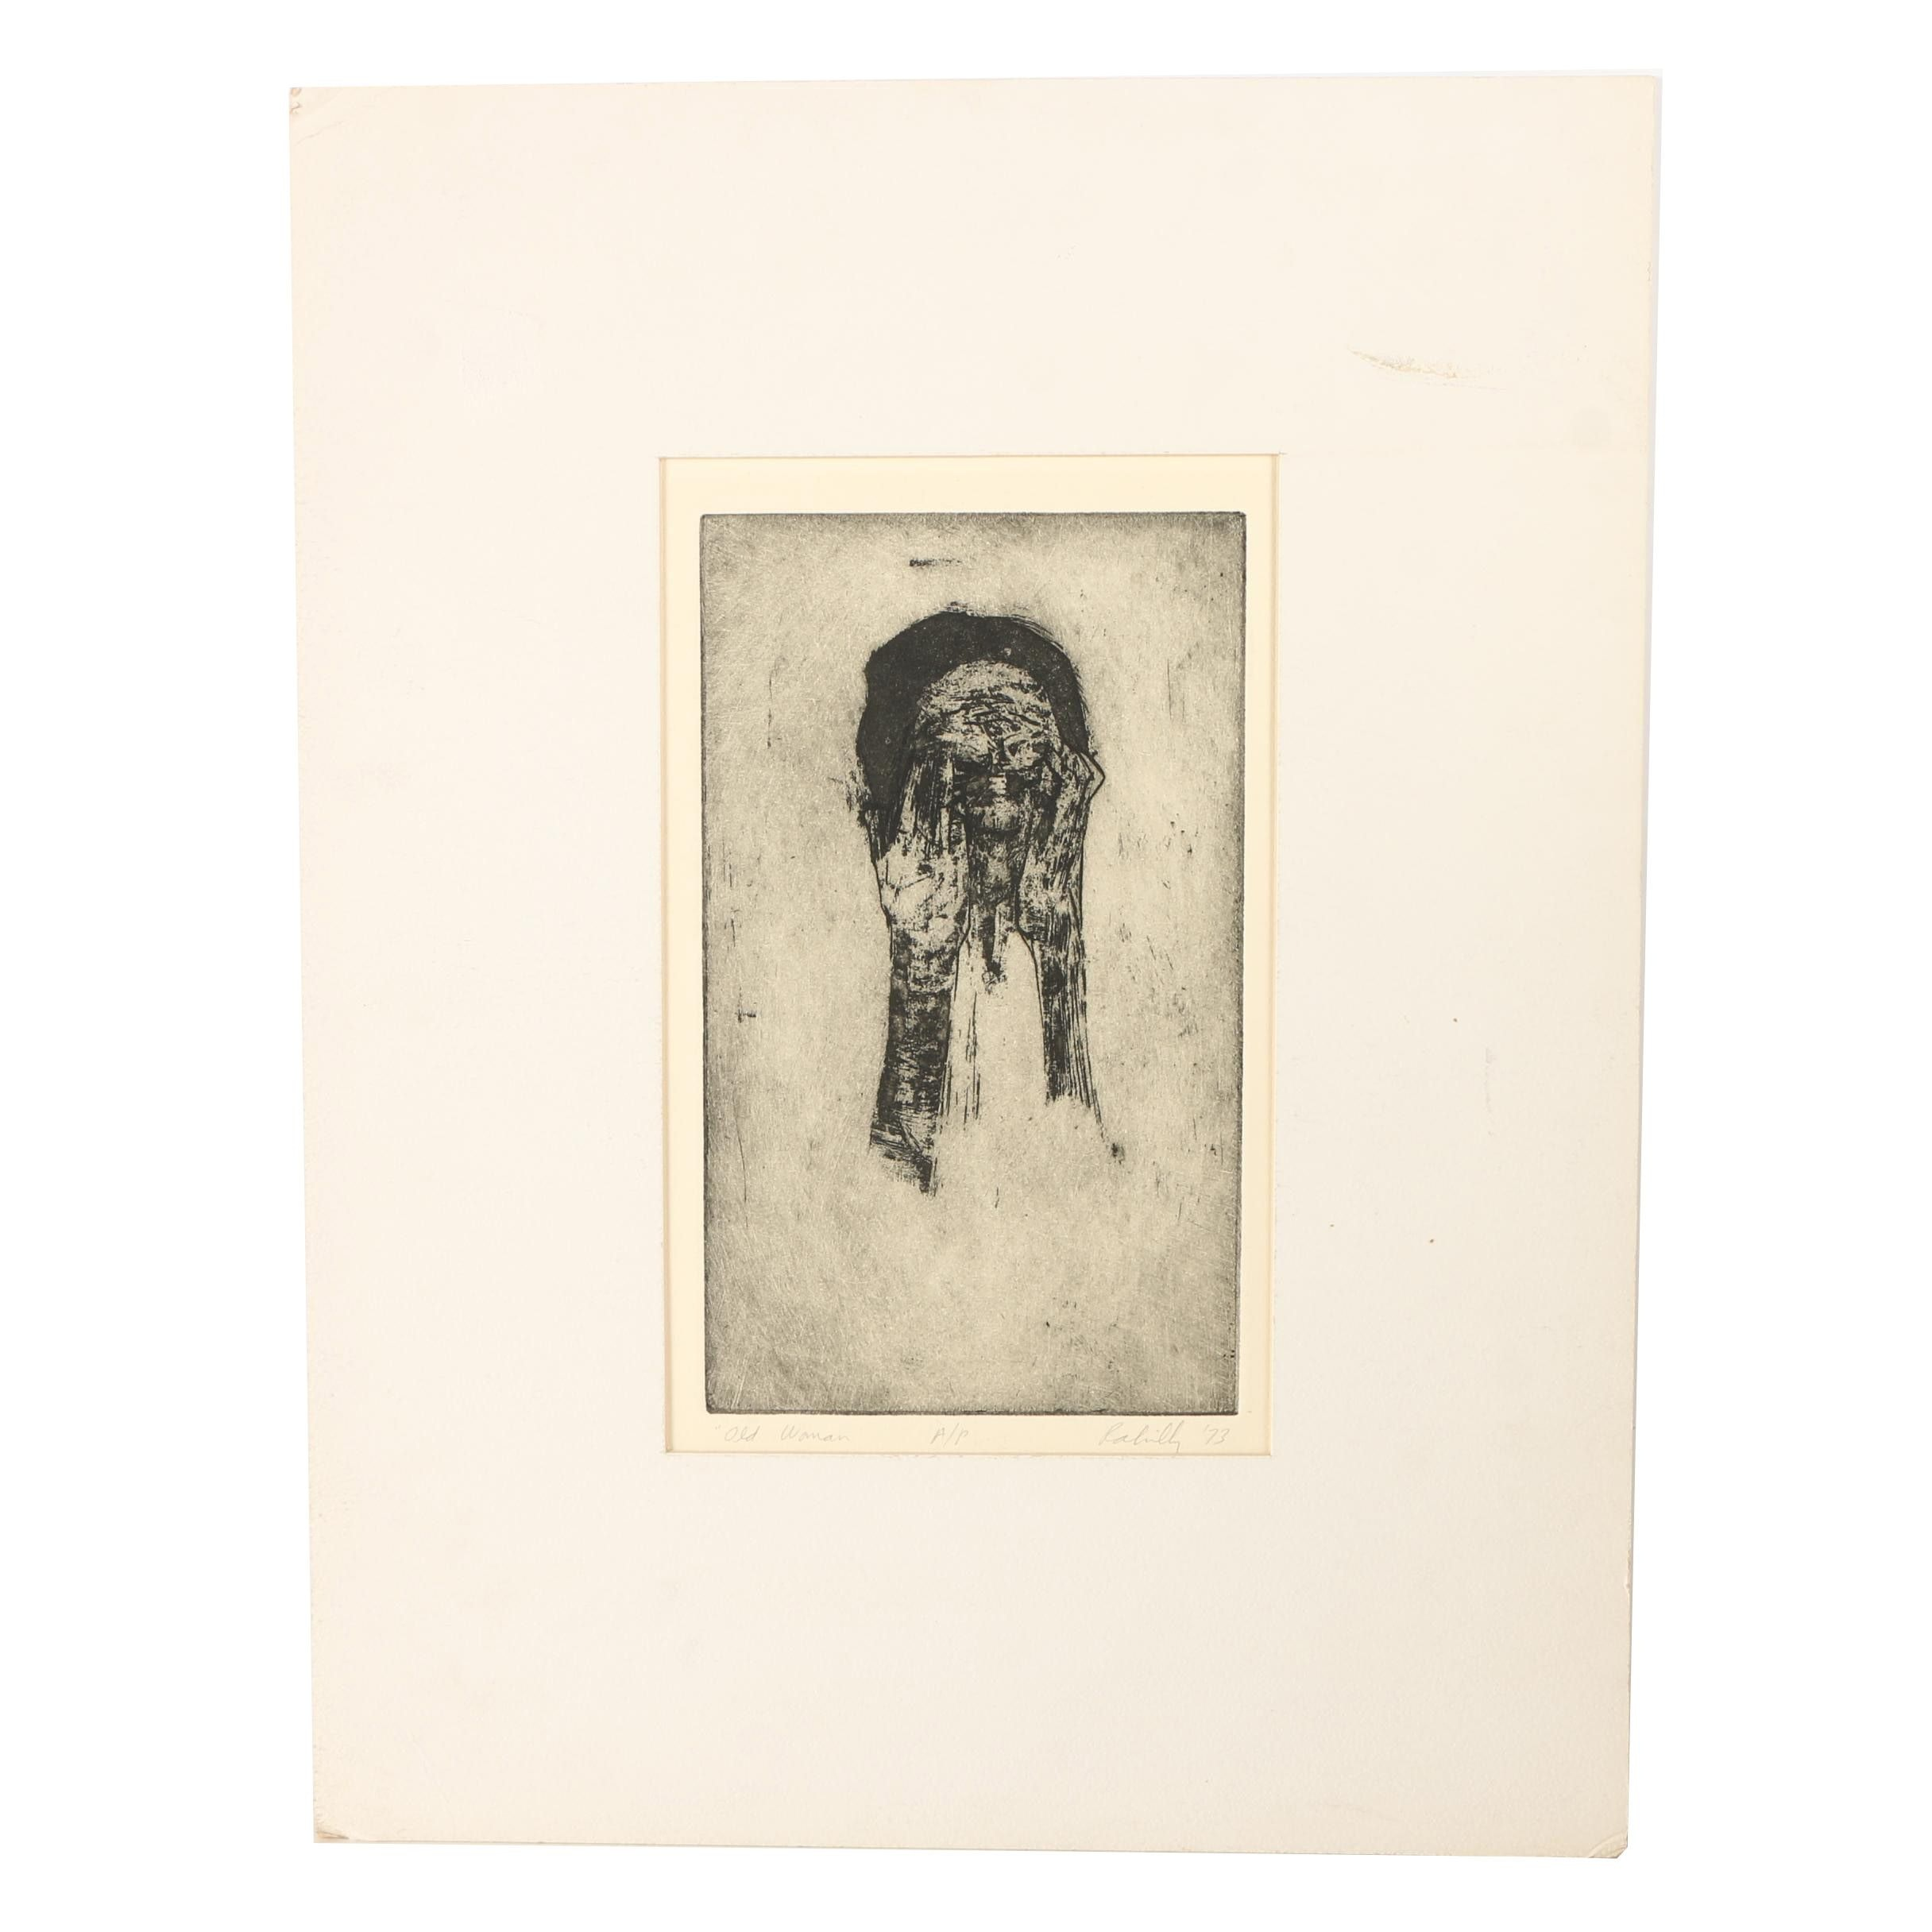 "Paul Rahilly 1973 Artist's Proof Aquatint Etching on Paper ""Old Woman"""